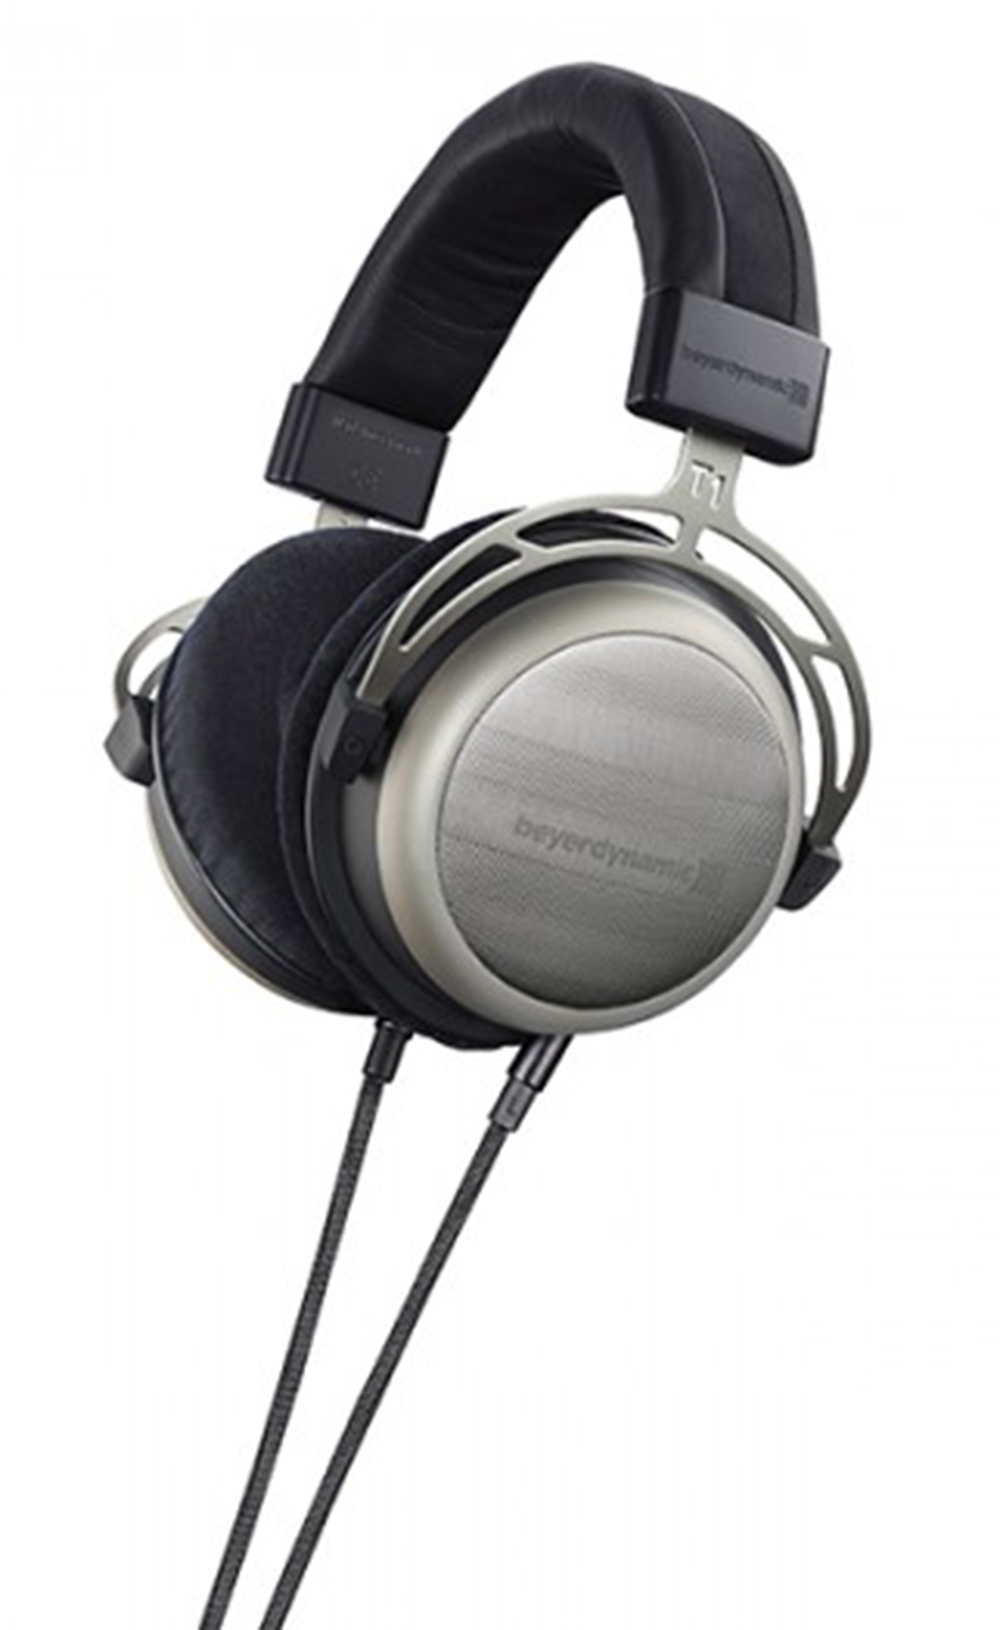 Beyerdynamic T5P Gen2 Portable Headphones - 32 Ohm